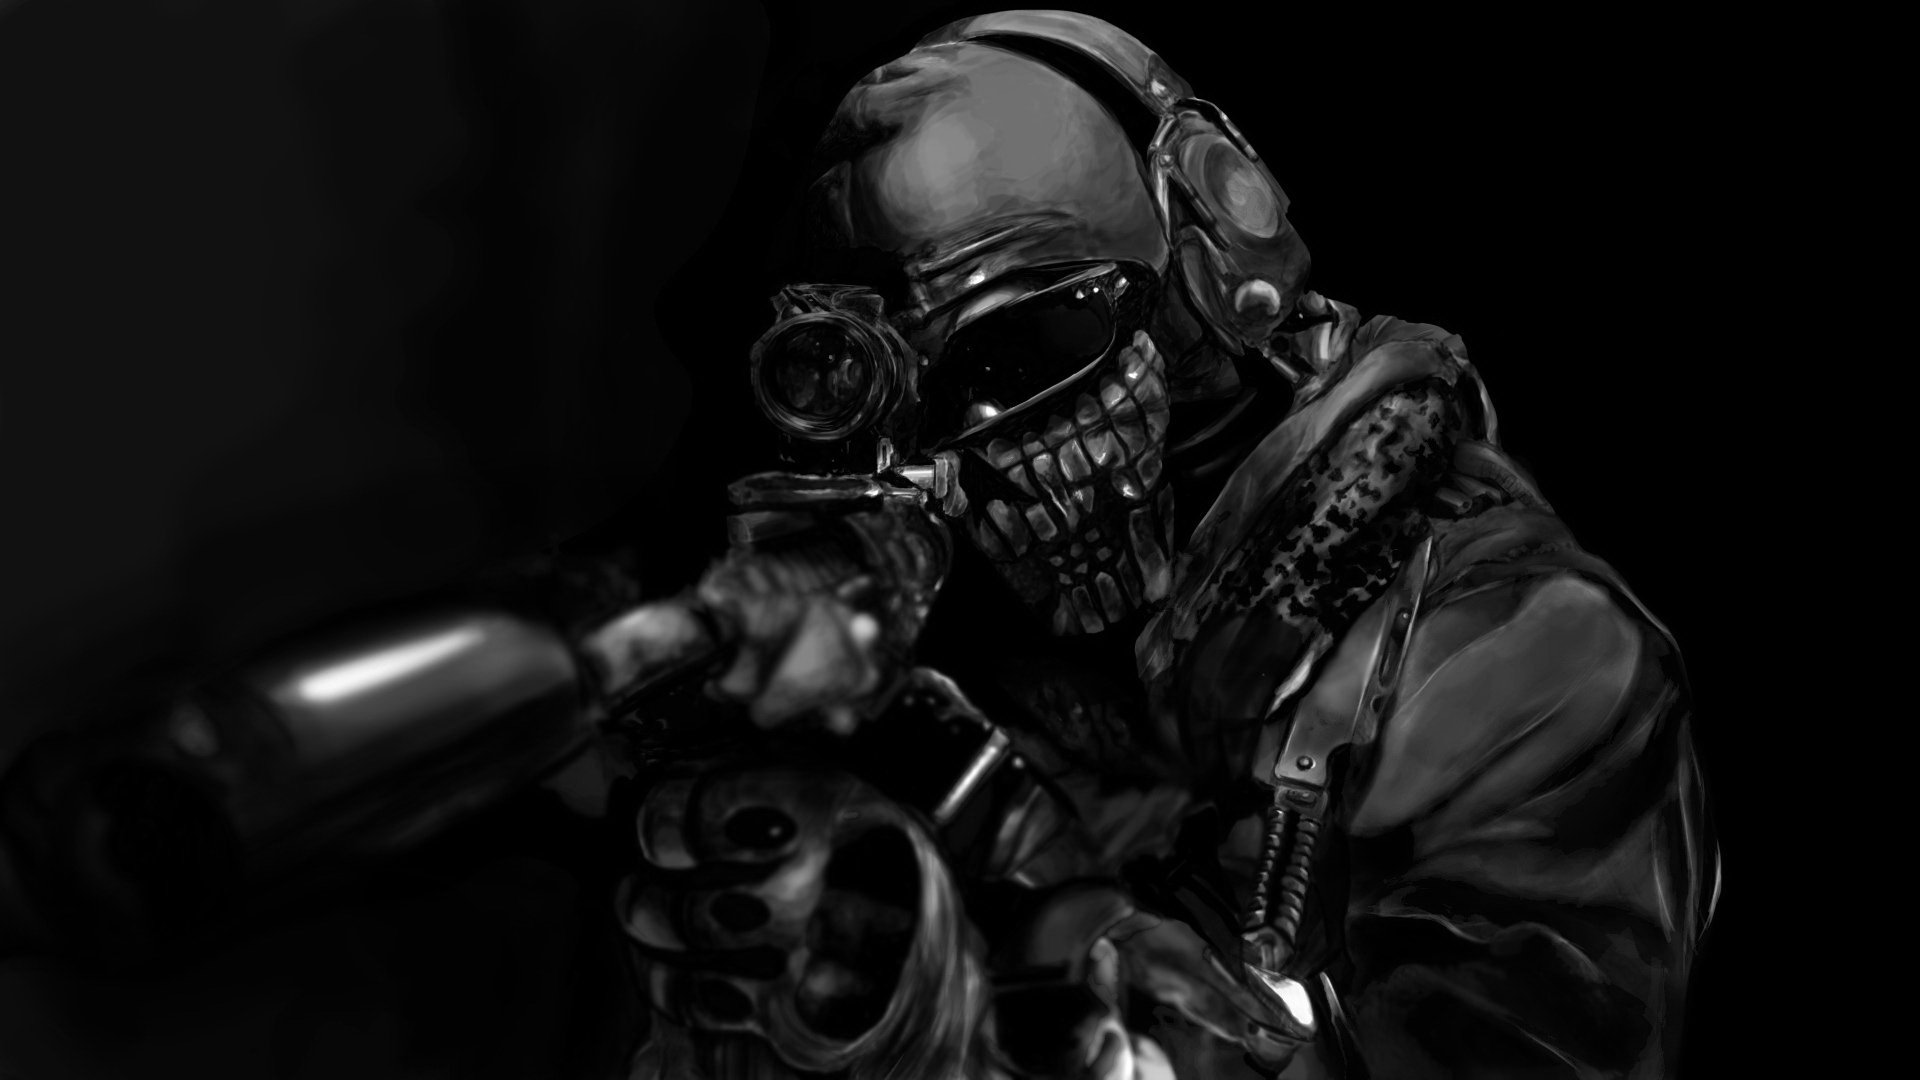 Call Of Duty Wallpapers High Quality